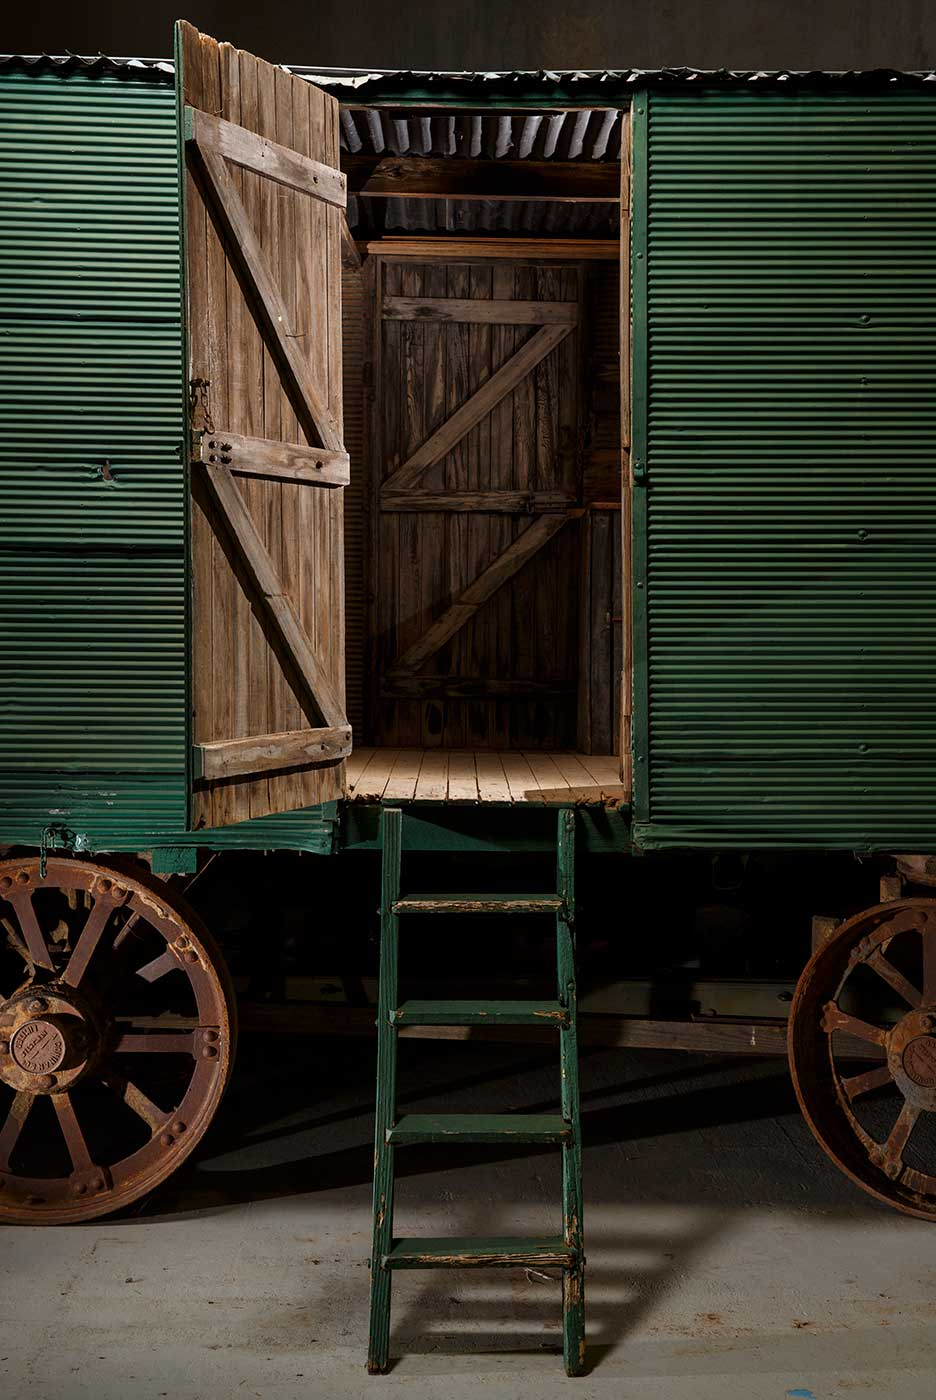 A cook's galley in the form of a metal-clad, timber and iron-framed box raised on wagon wheels. This is a view of the side doors. - click to view larger image